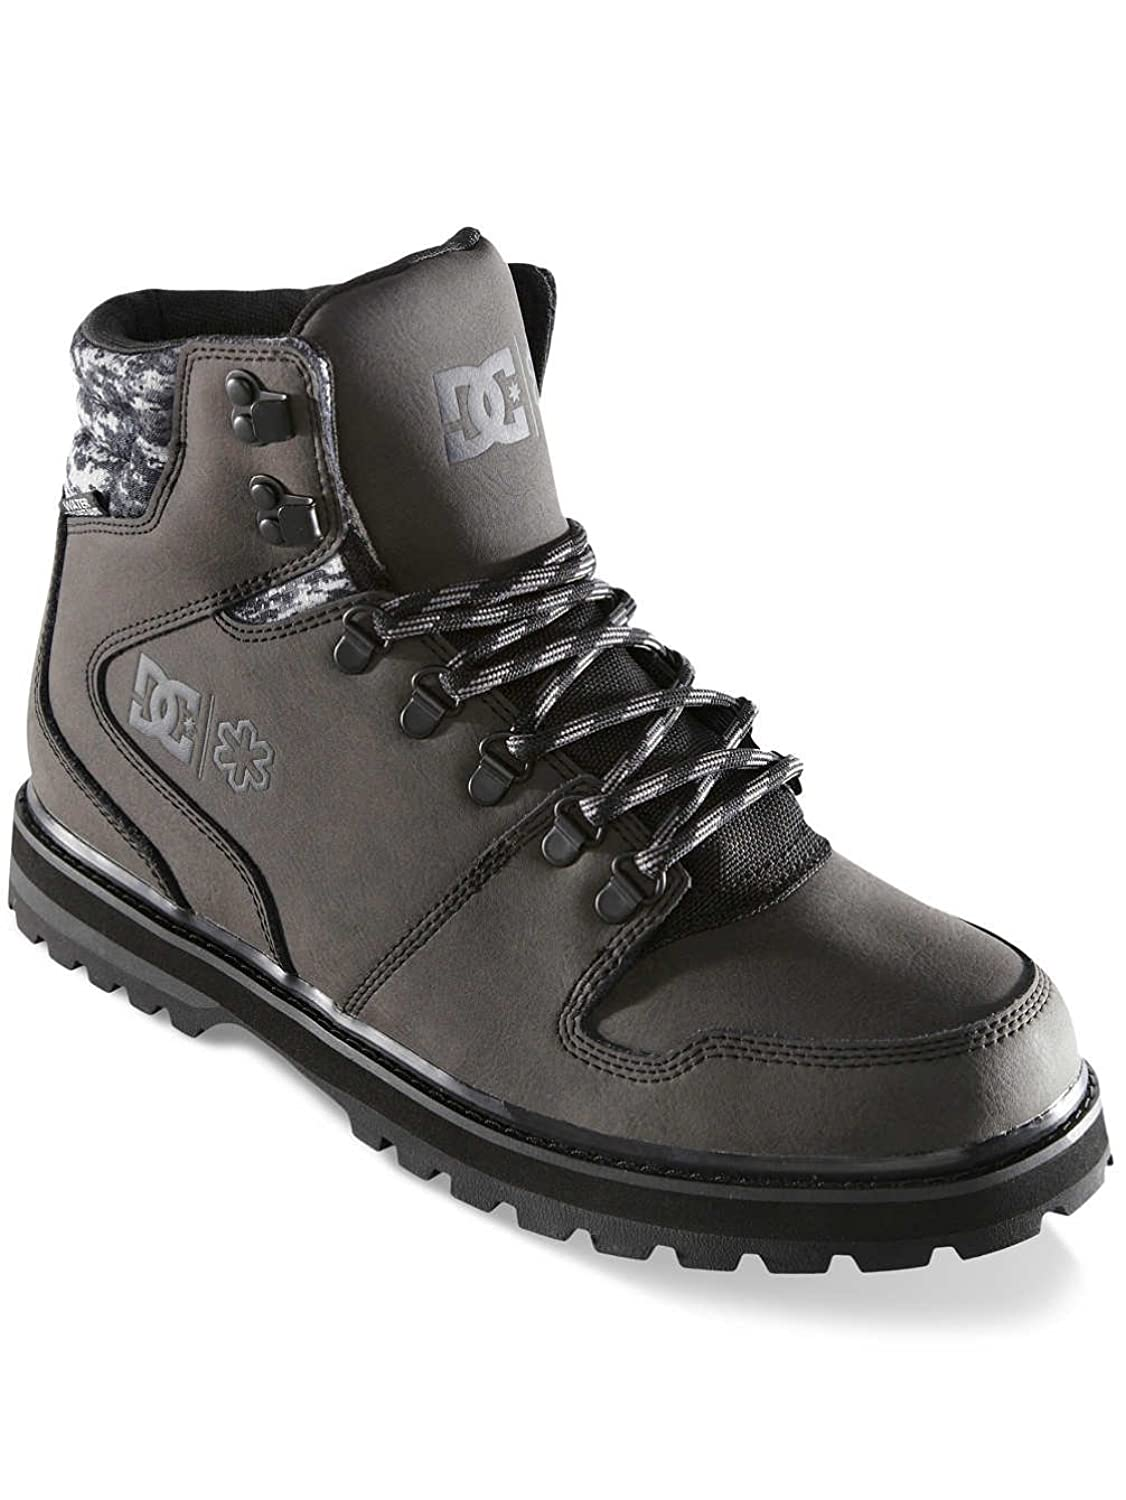 DC - Mens Peary SPT Boot, Black Camo